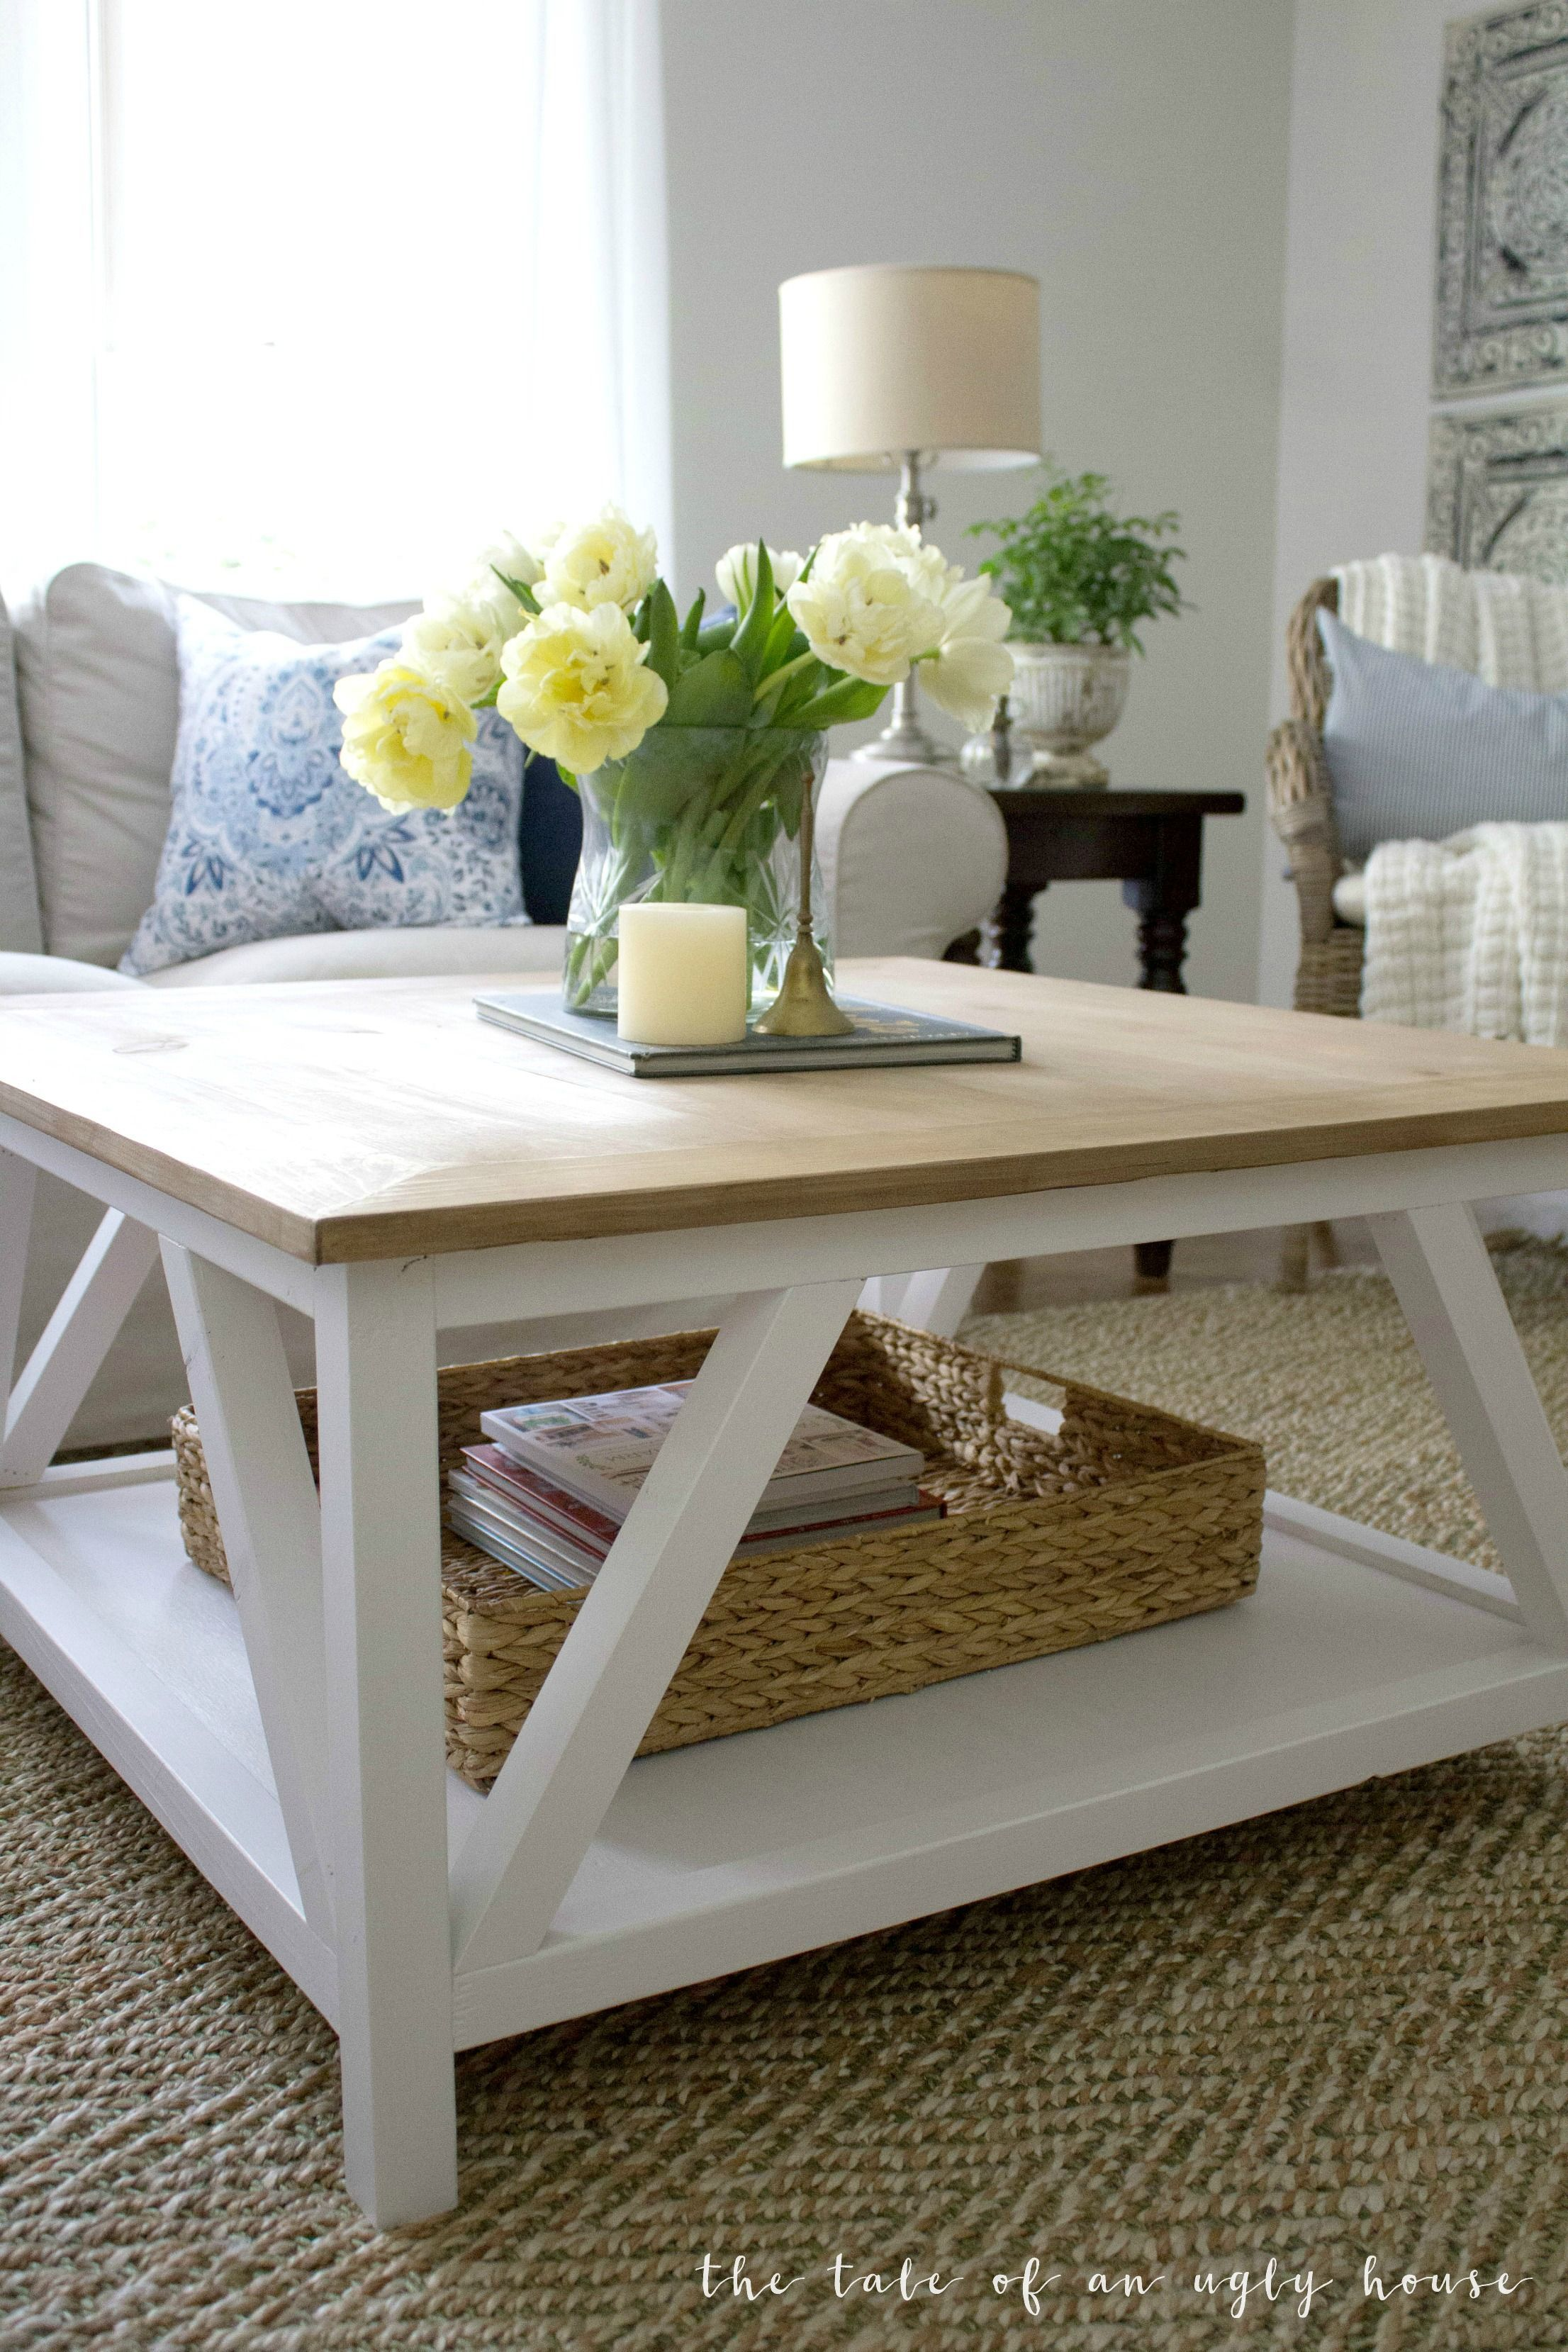 The Coffee Table Book Is An Absolute Must Modern Farmhouse Coffee Table Farmhouse Style Coffee Table Coffee Table Farmhouse